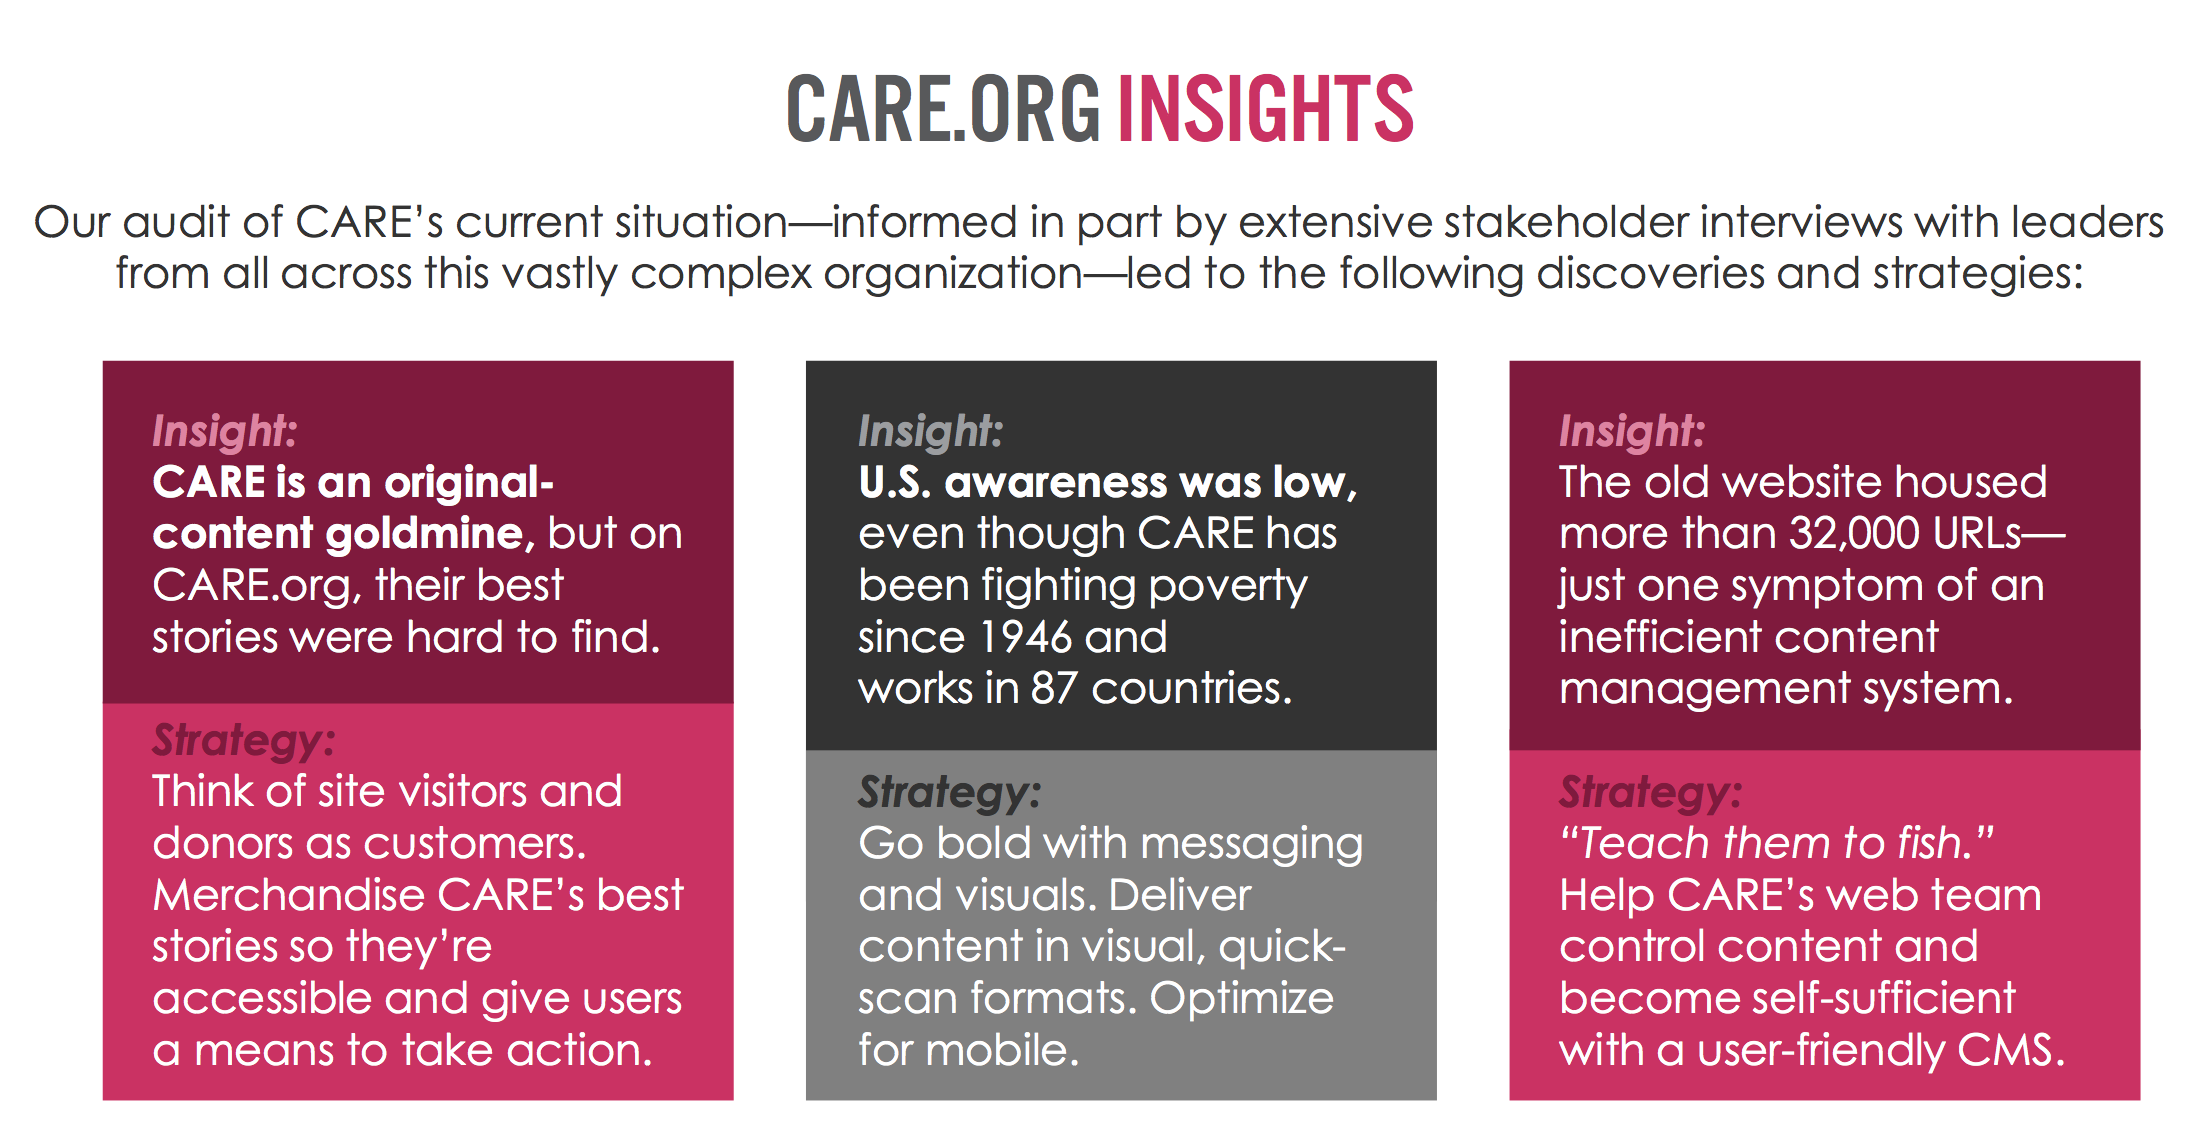 CARE_insights_strategy.png